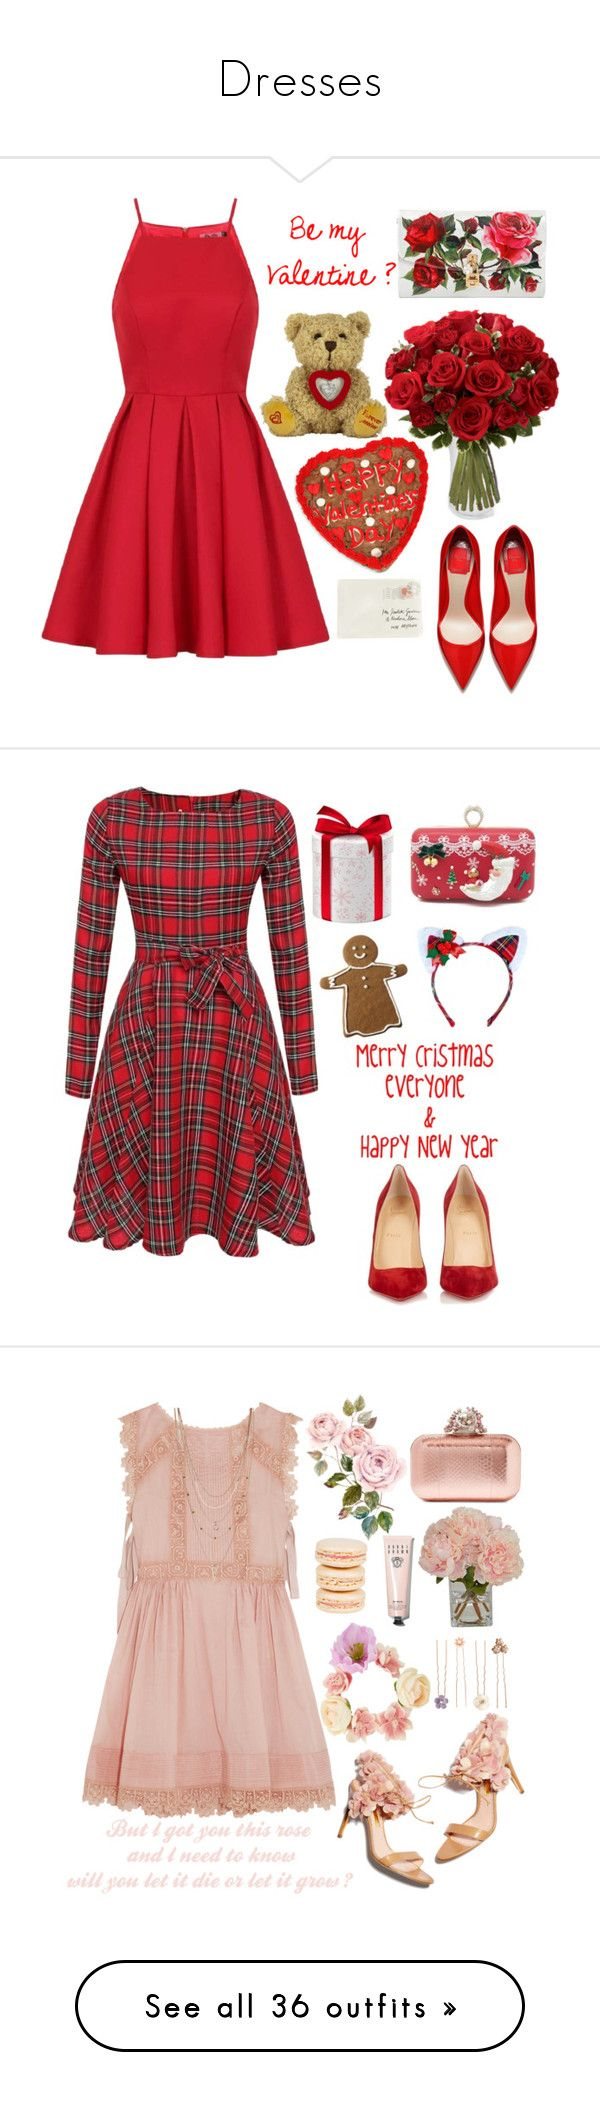 """""""Dresses"""" by hermiona355 ❤ liked on Polyvore featuring Chi Chi, Dolce&Gabbana, Moschino, Christian Louboutin, Leg Avenue, RED Valentino, Jimmy Choo, Mikimoto, The French Bee and Bobbi Brown Cosmetics"""